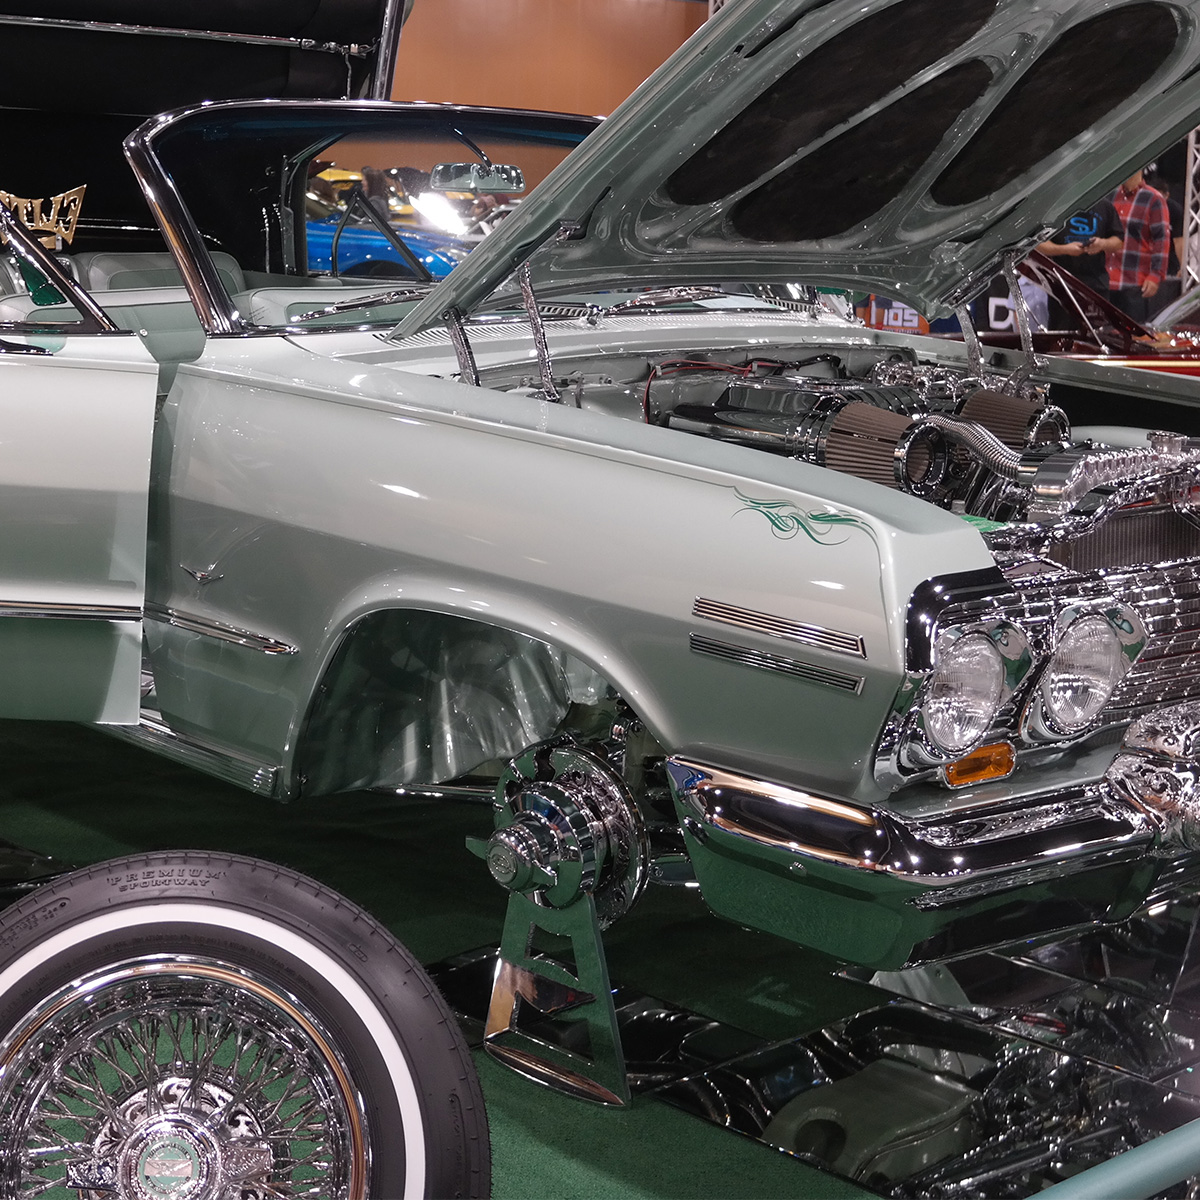 Lowrider at Car Show